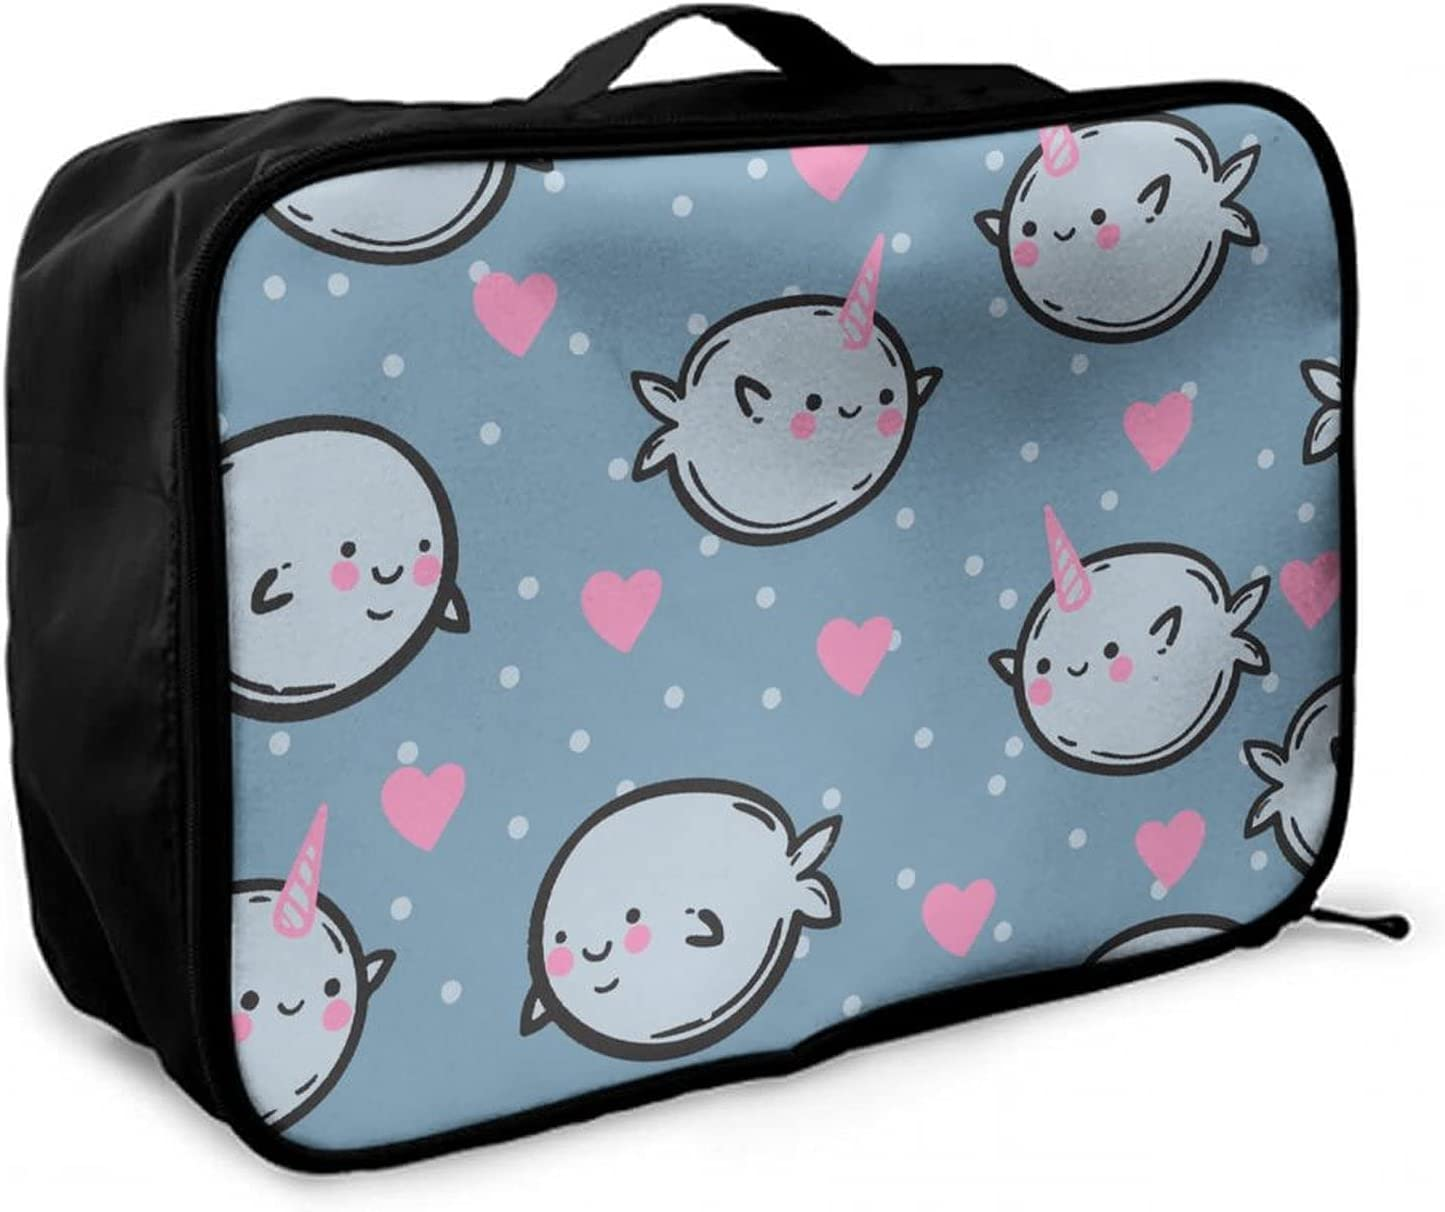 NiYoung Unicorn Narwhal Manufacturer direct delivery Sale special price Love Travel Duffle Large Bag Lightweight